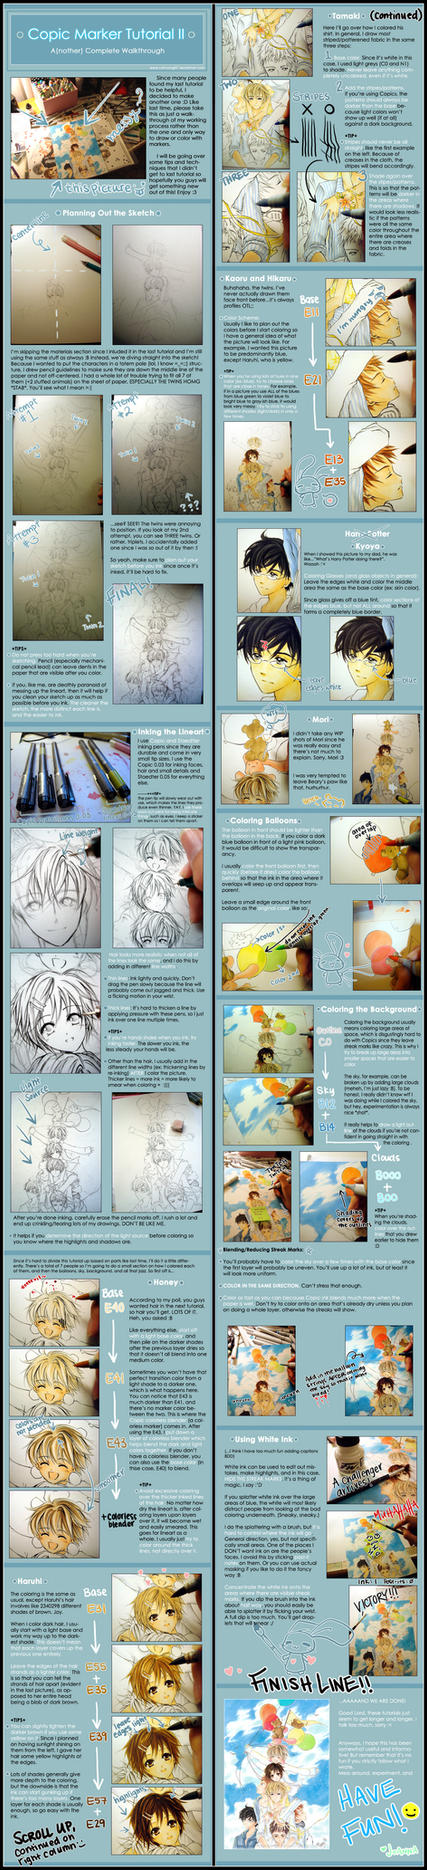 Copic Marker Tutorial II by cartoongirl7